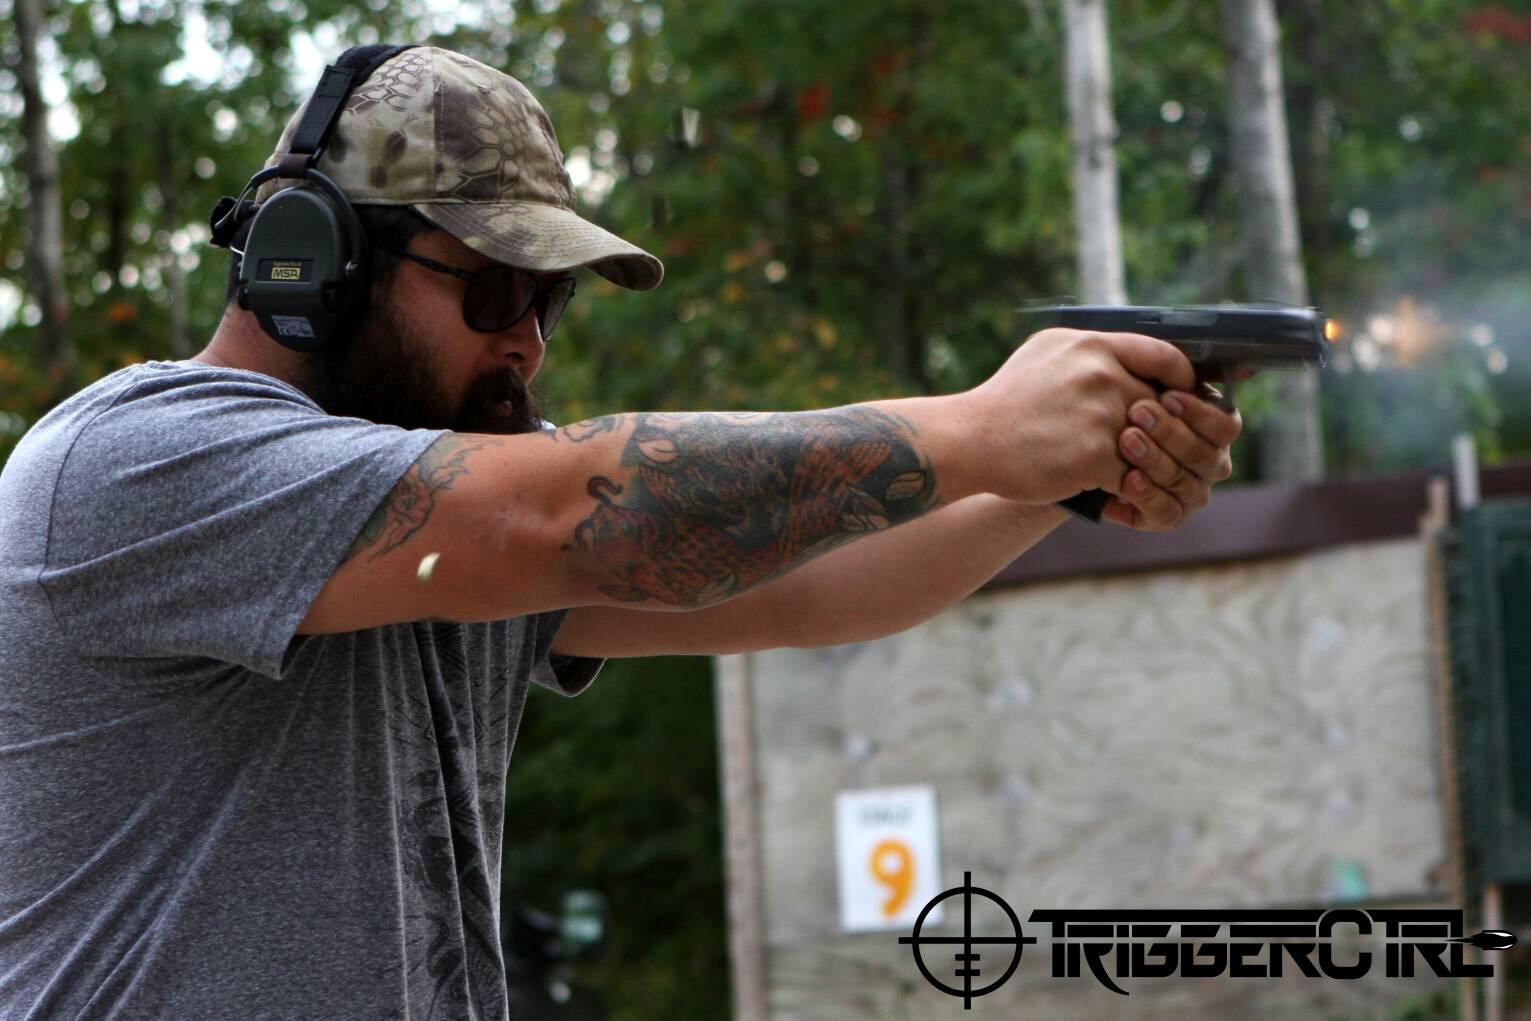 I have always been a fan of the Glock 19 and had considered using it a couple of times for competition. I just couldn't get myself to do it with people running G34's or any other 5 inch gun. AT THE TIME, I thought it was to much of a disadvantage.